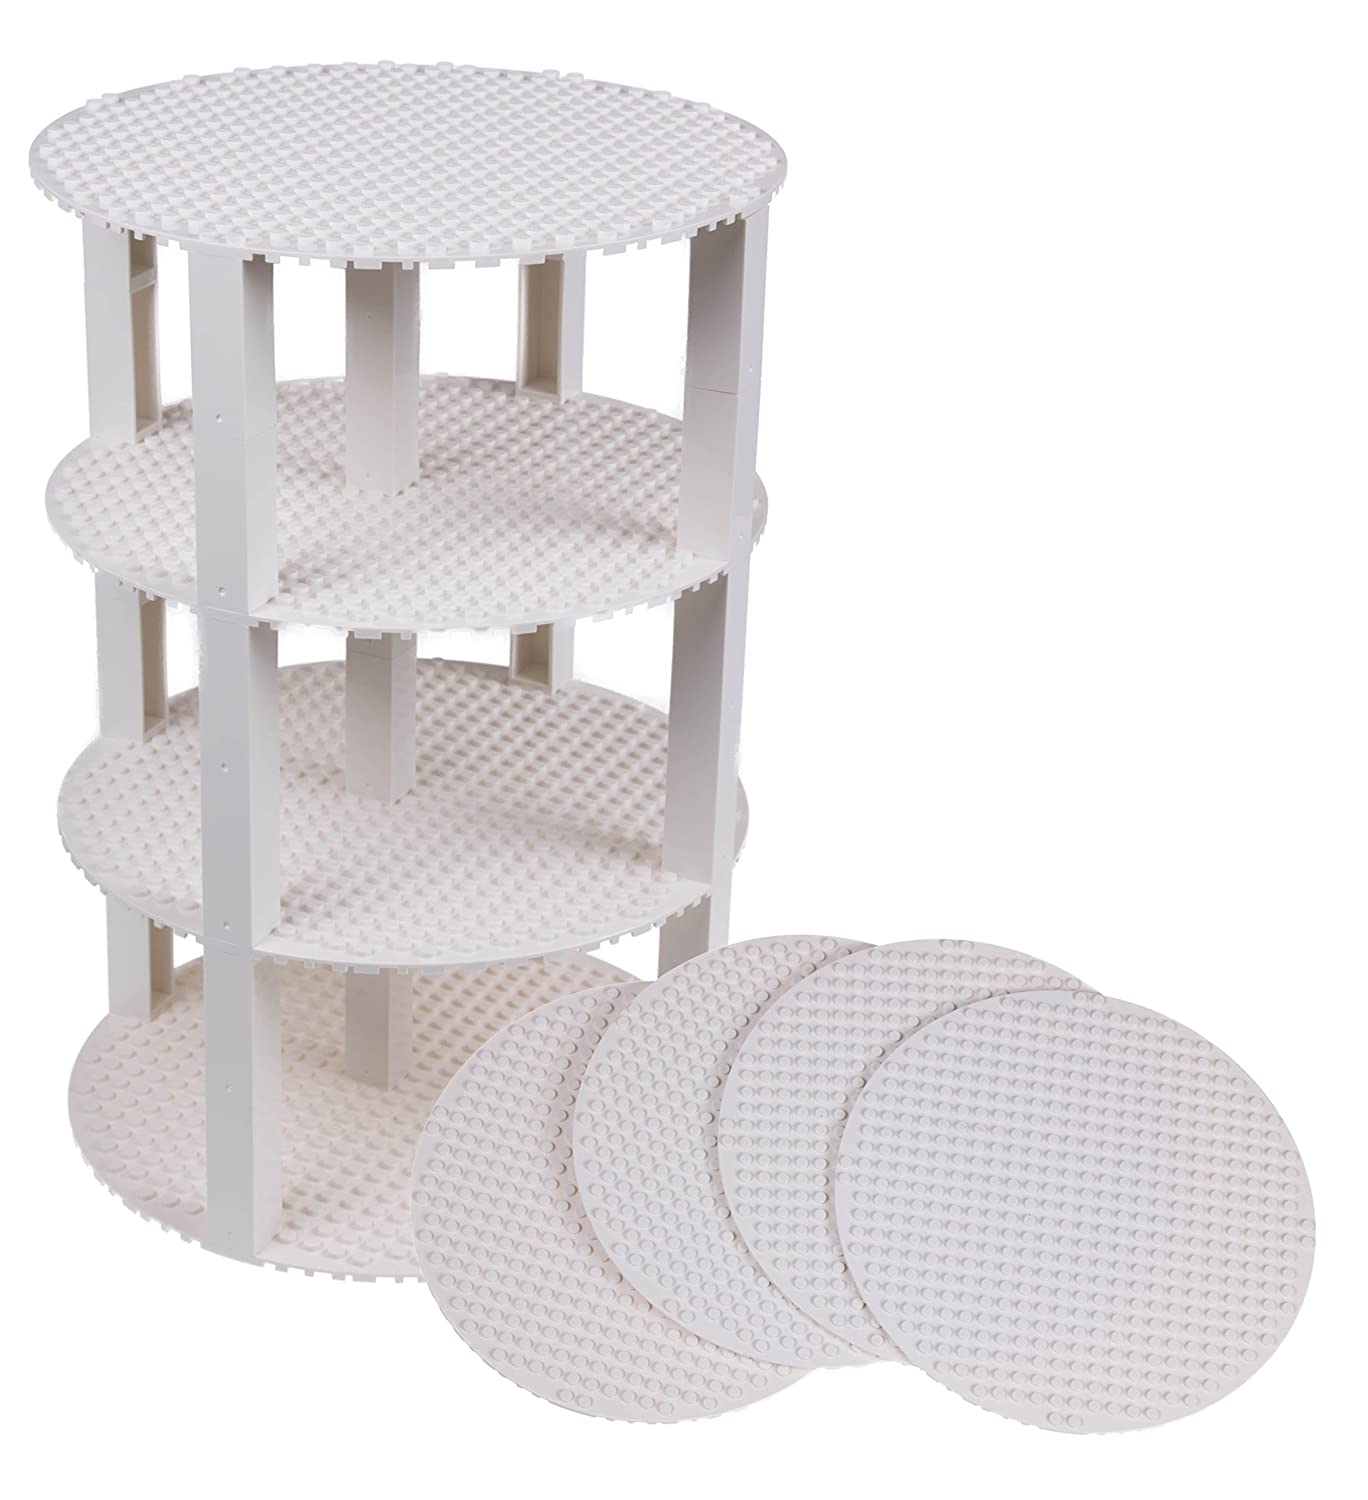 """Premium White 8"""" Circle Stackable Base Plates - 4 Pack Baseplate Bundle with 30 2x2 Stackers (New and Improved) - Compatible with All Major Brands"""